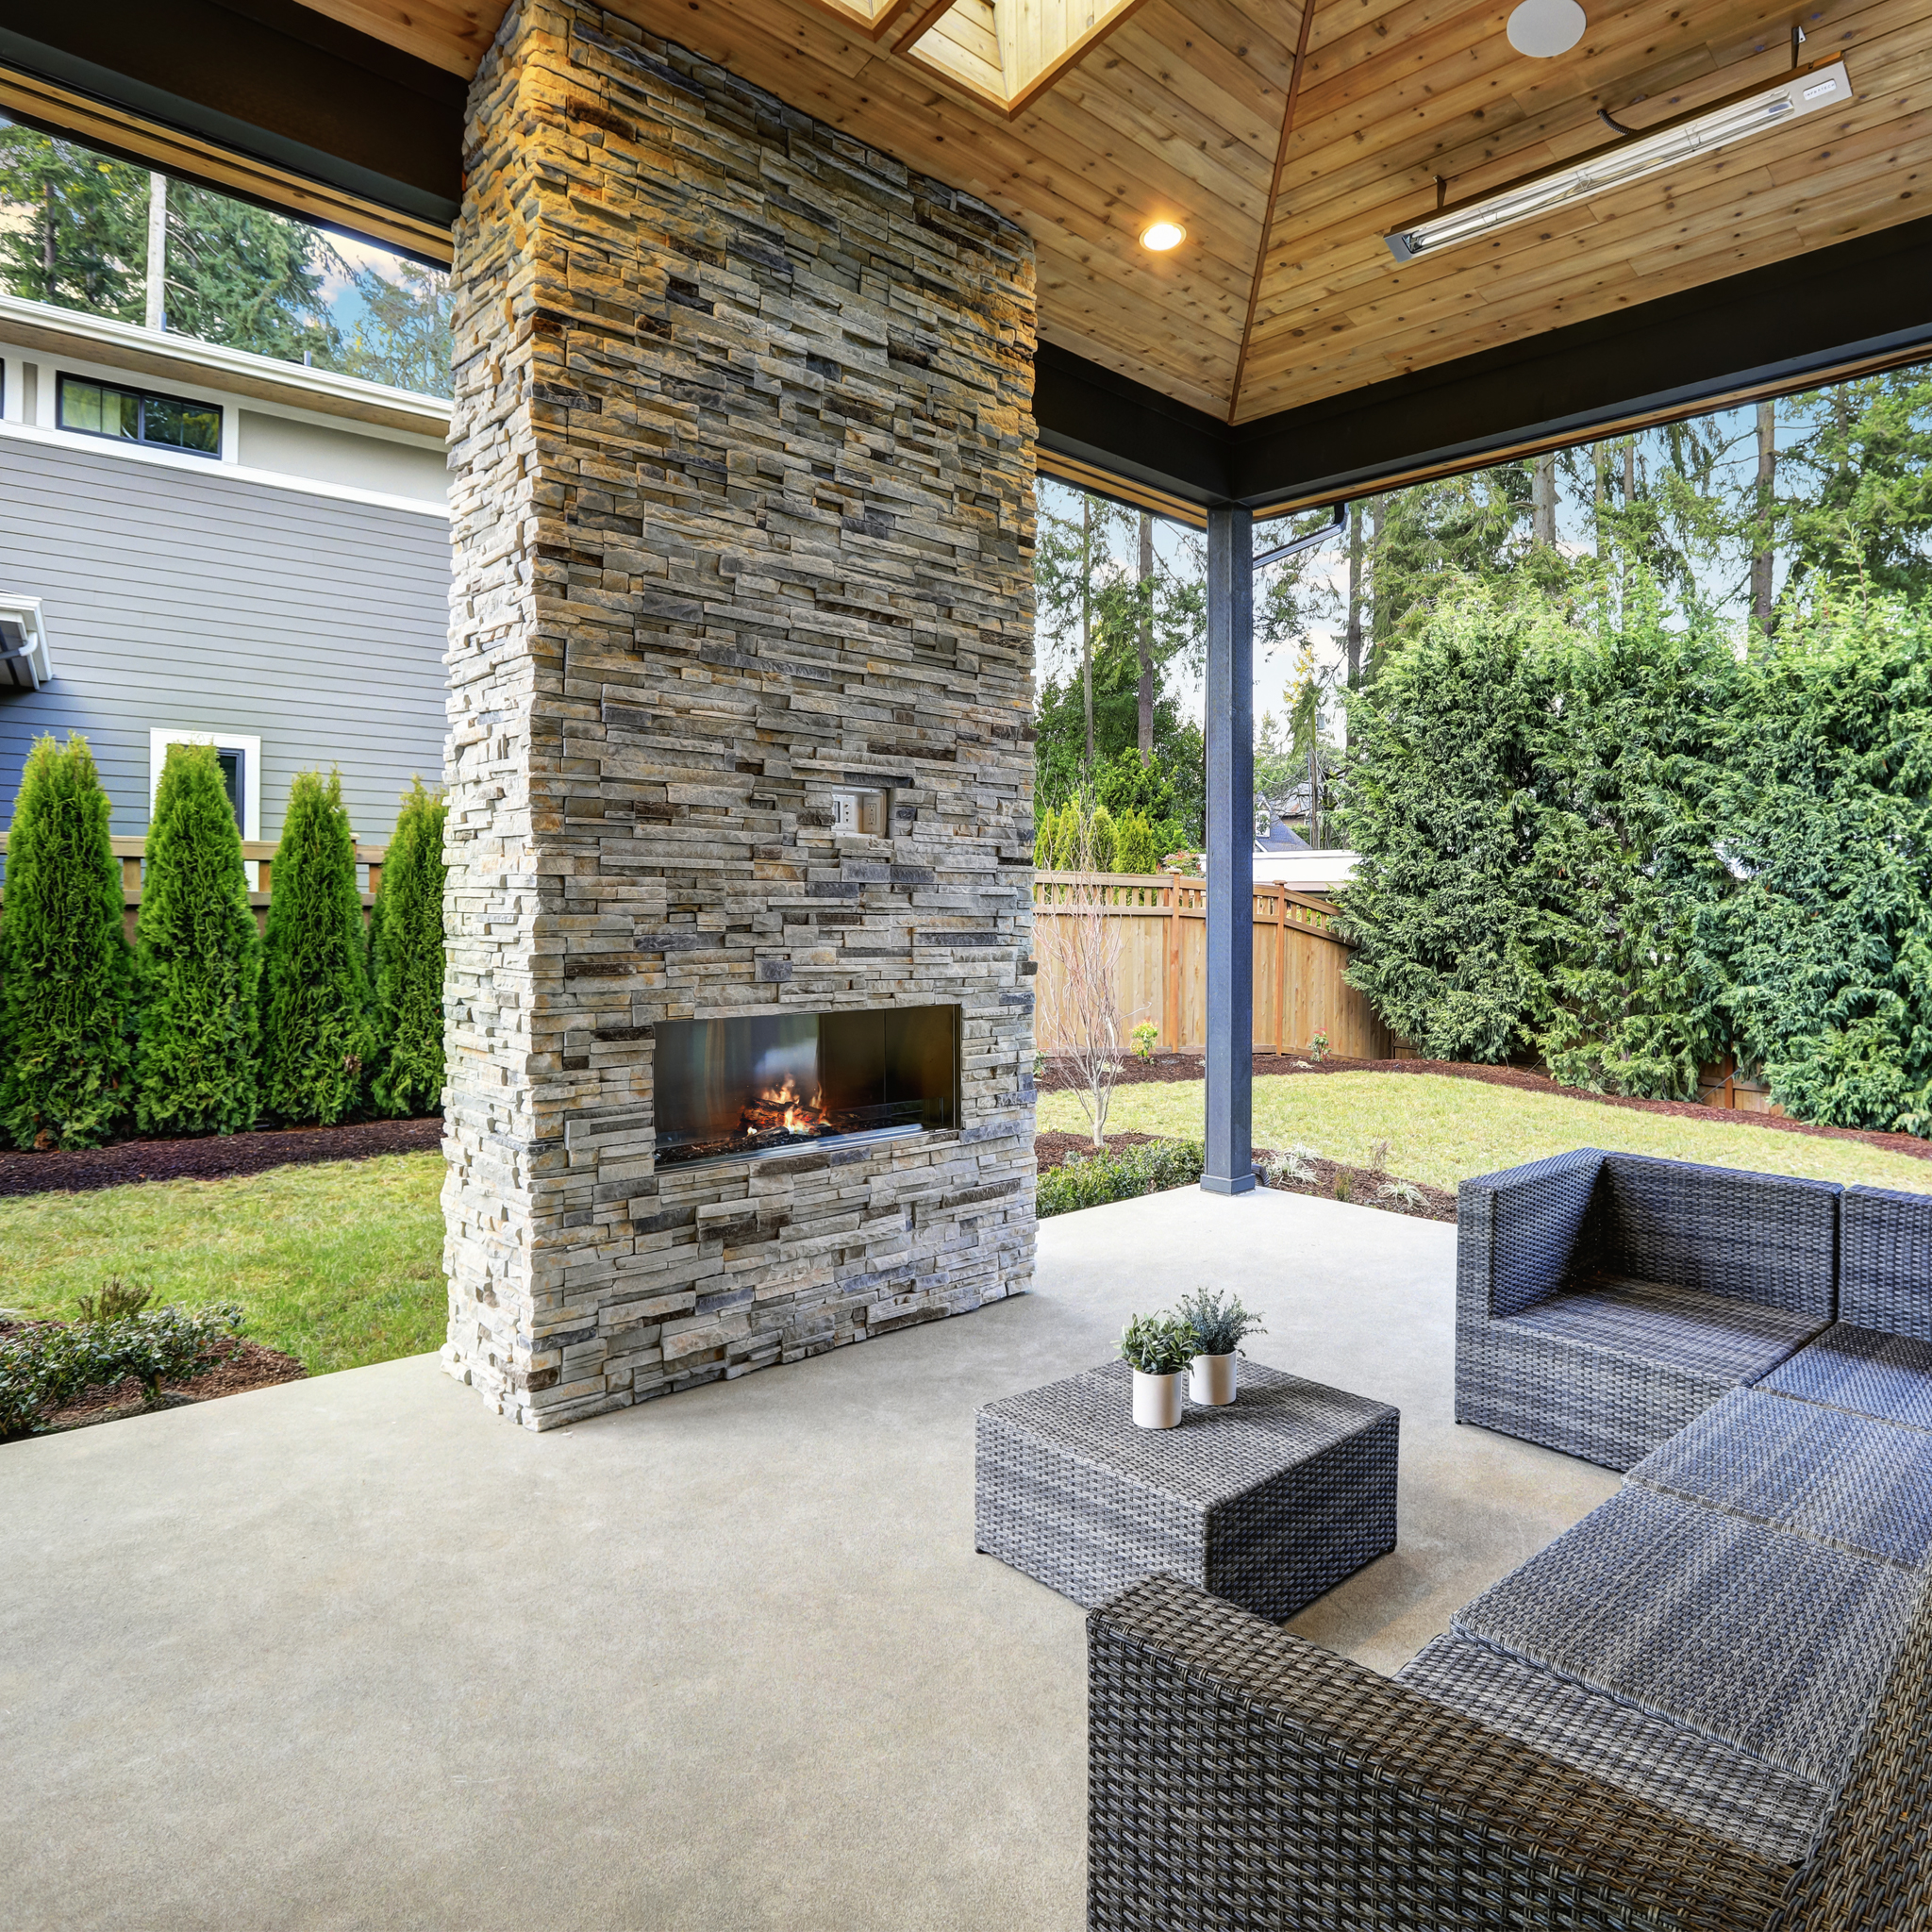 A photo of a backyard fireplace with seating.